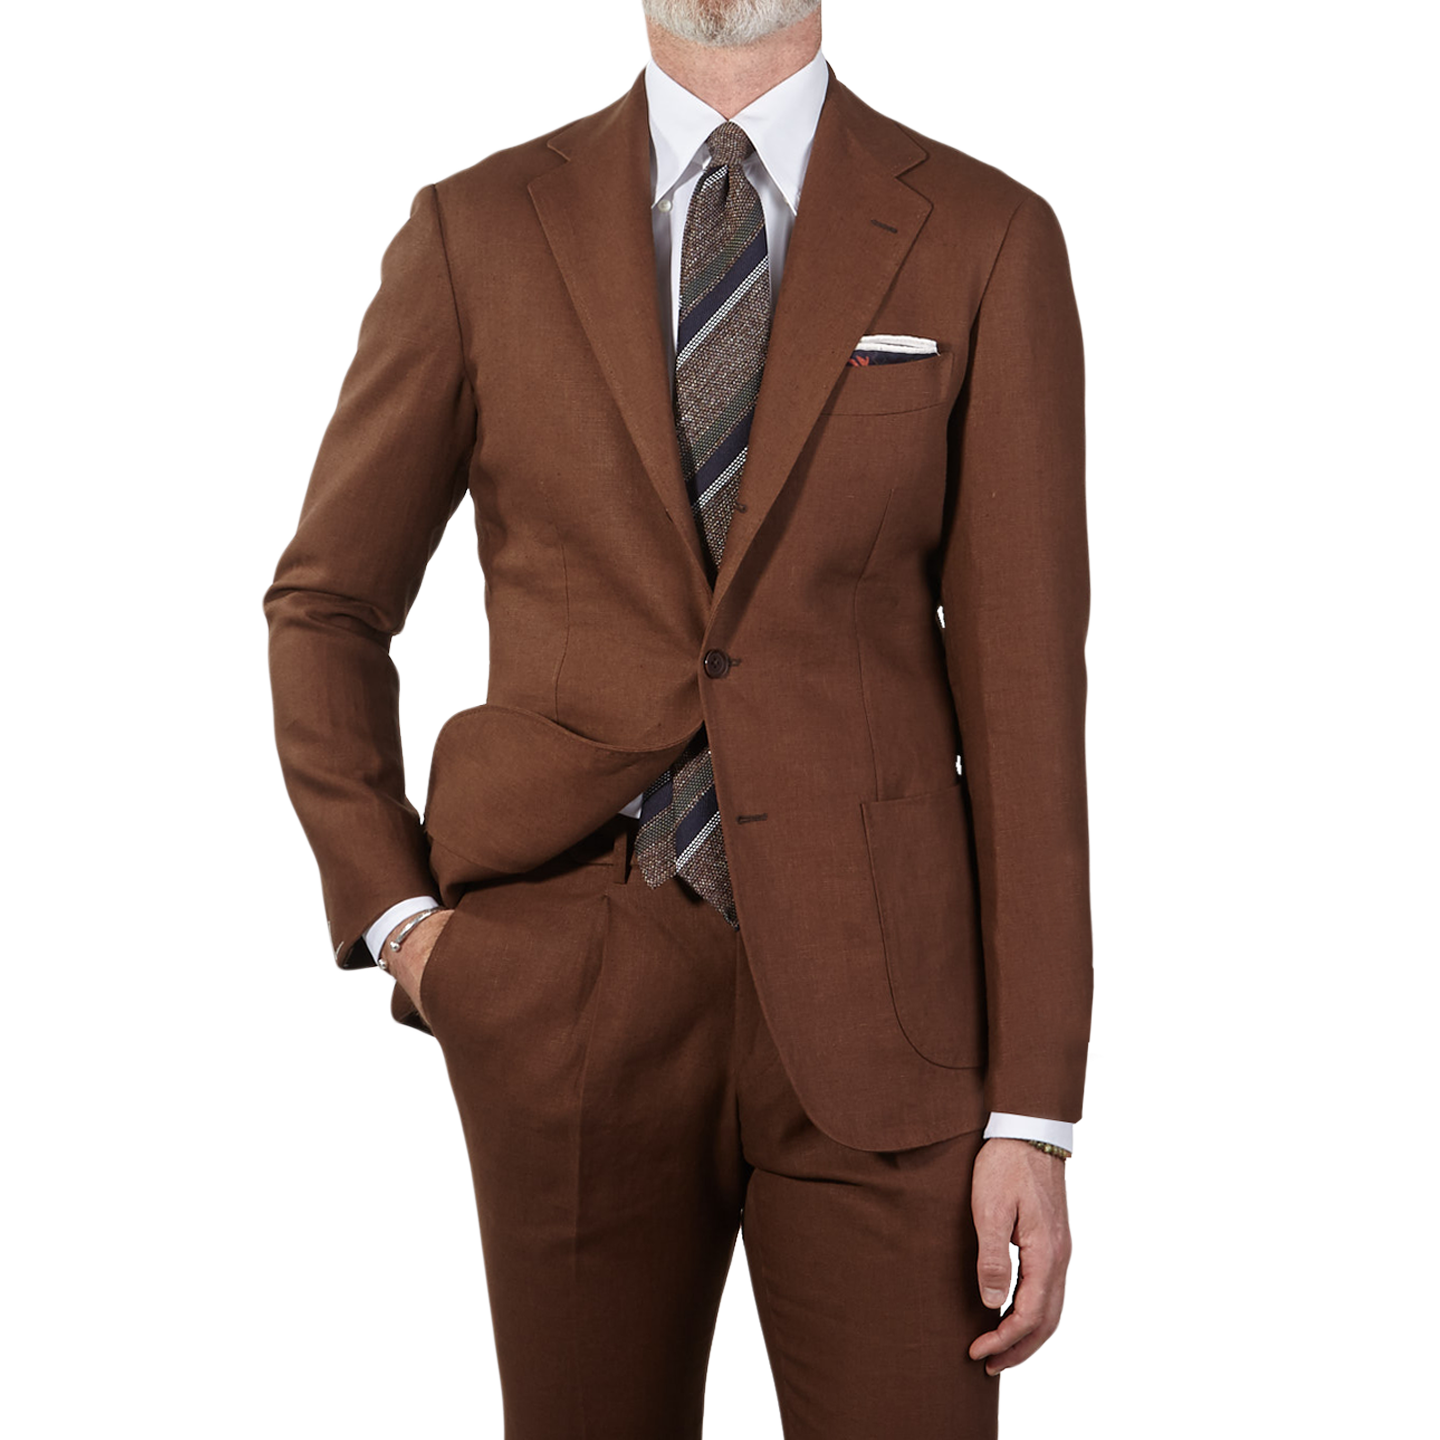 Ring Jacket Irish Linen Tobacco Slimfit Suit Front